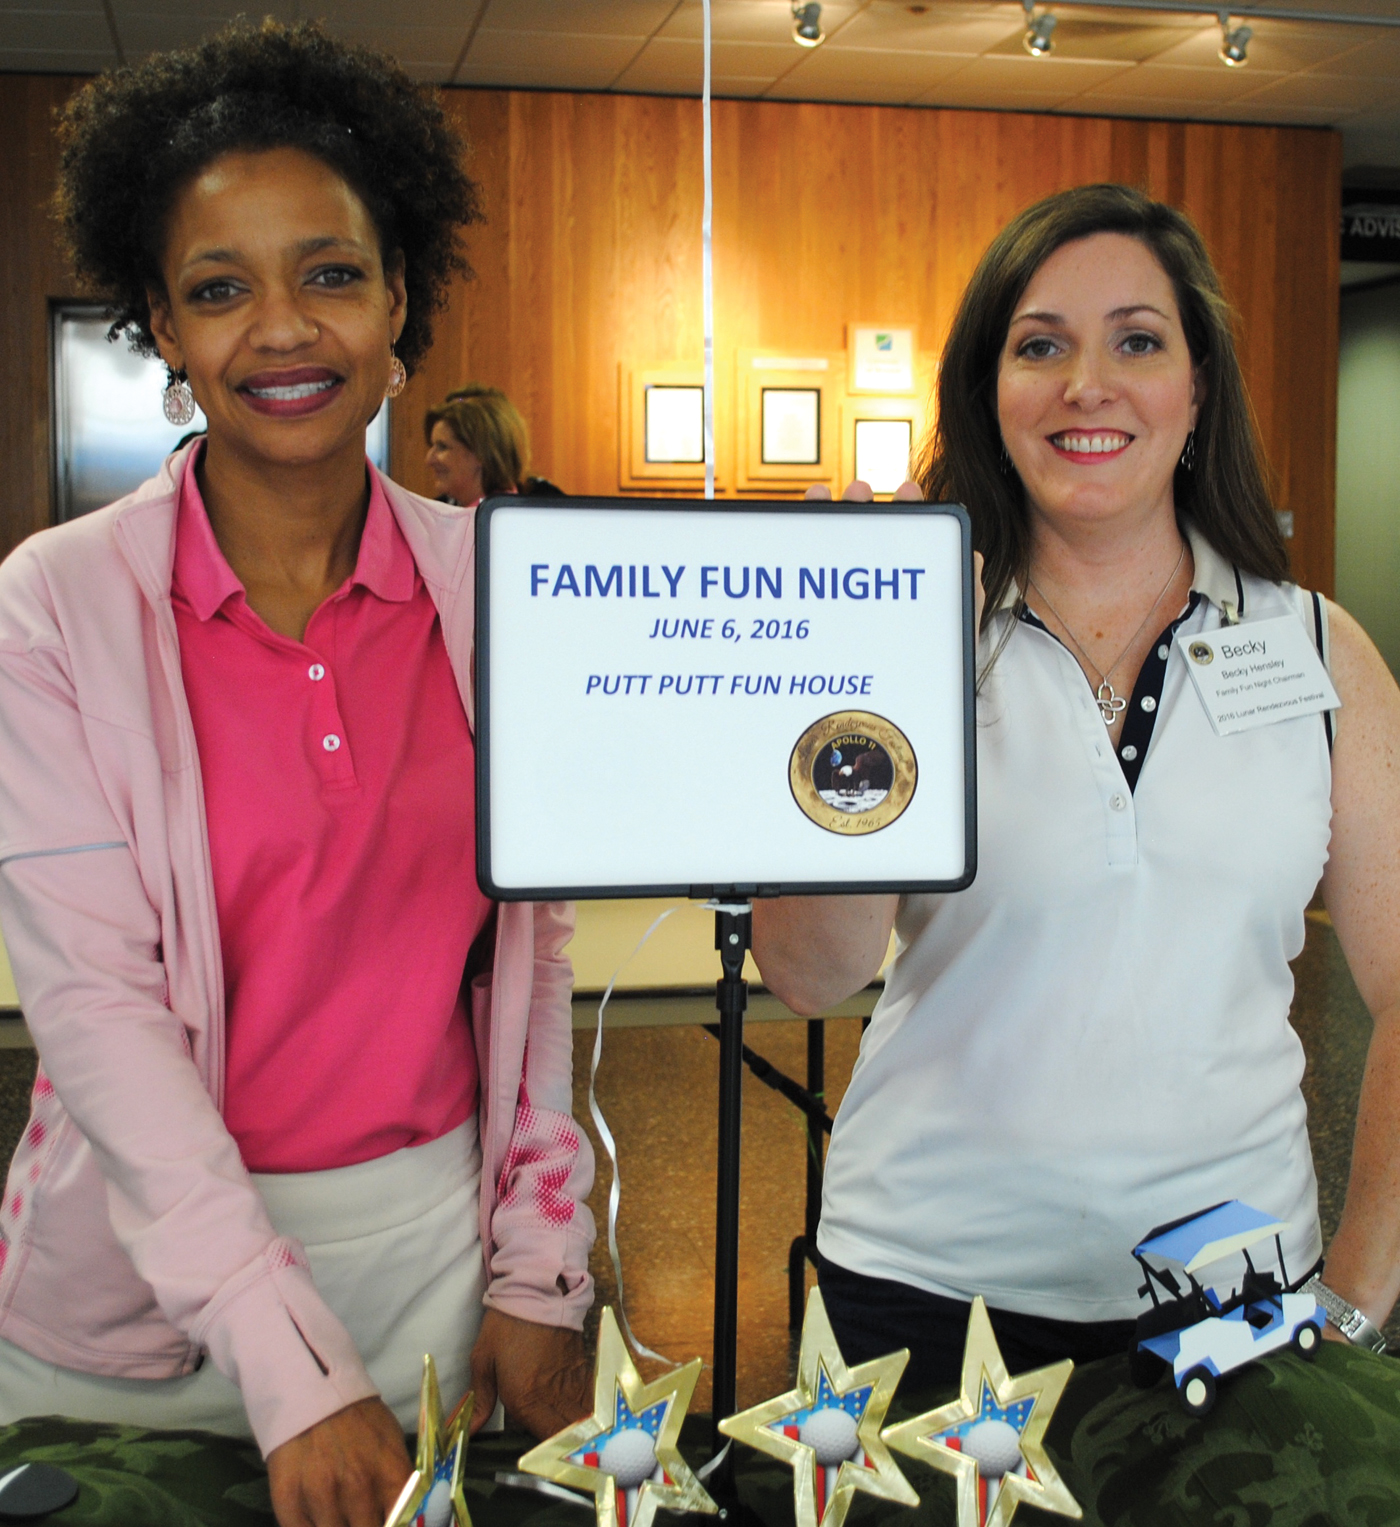 Family Fun Night Chairman Becky Hensley, right, and Co-Chairman Page Rander hope to have a big crowd at the Putt-Putt Fun House in Webster Monday, June 6.